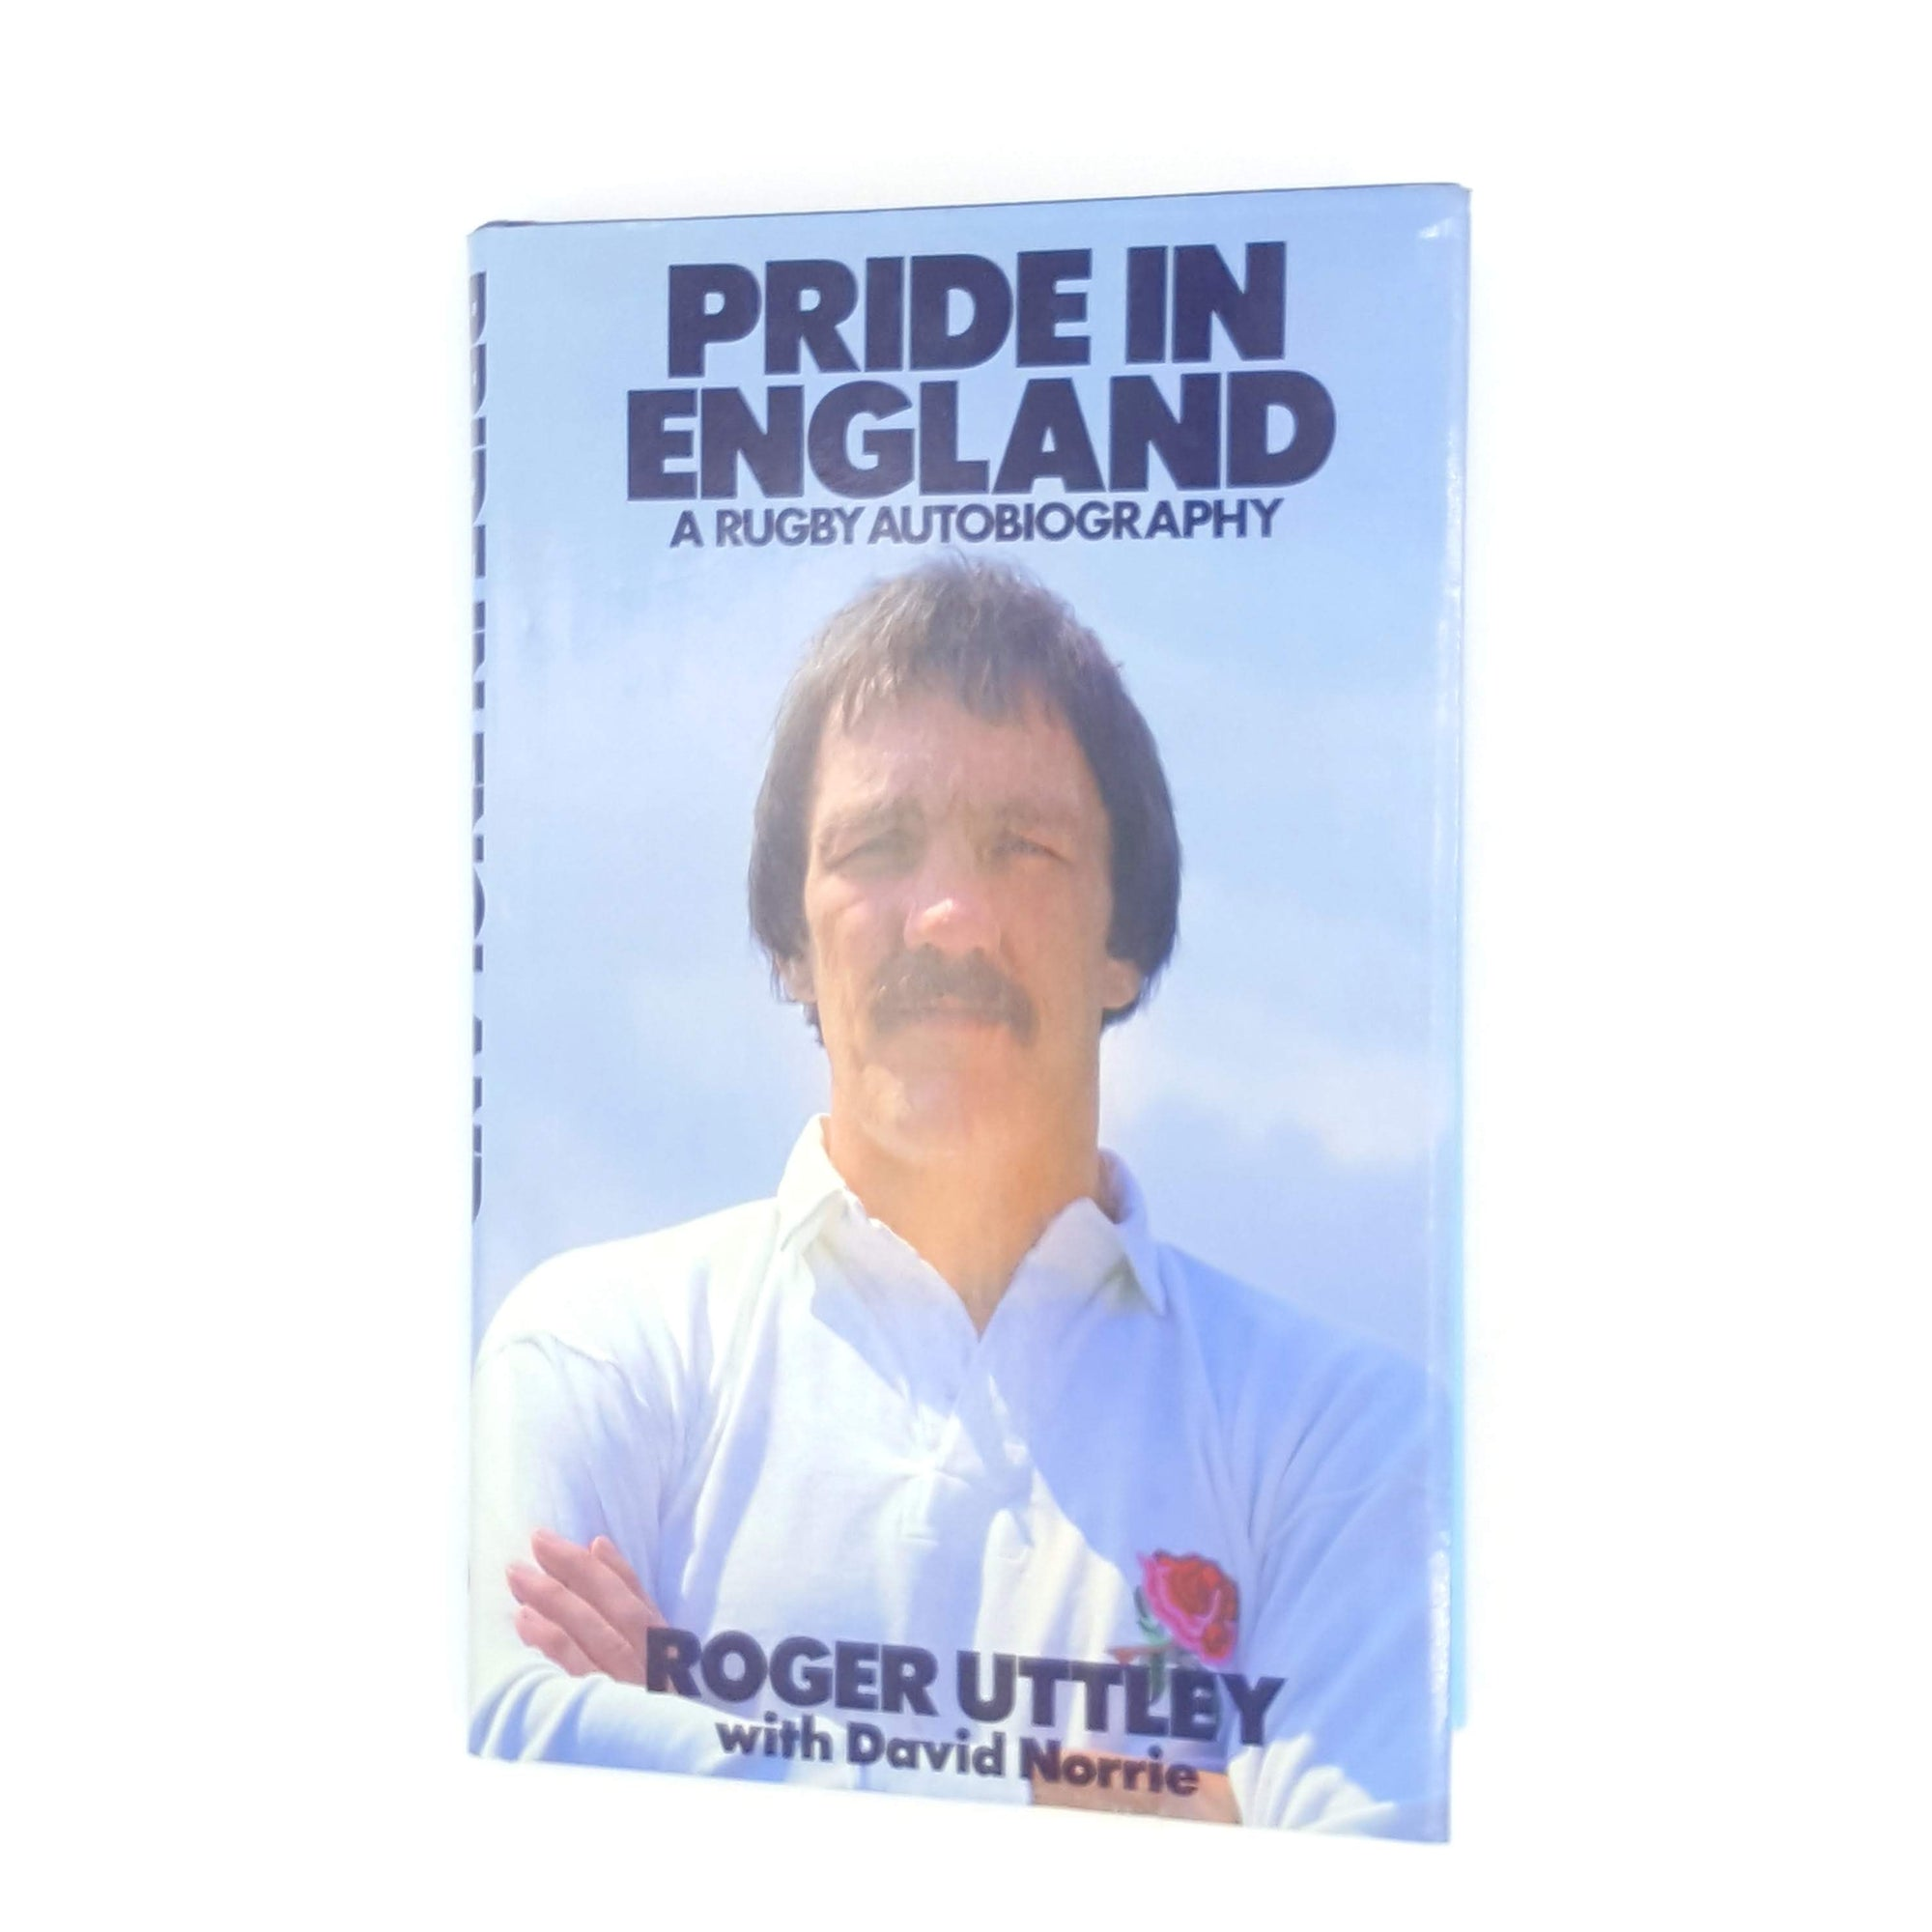 Pride in England: A Rugby Autobiography by Roger Uttley with David Norrie